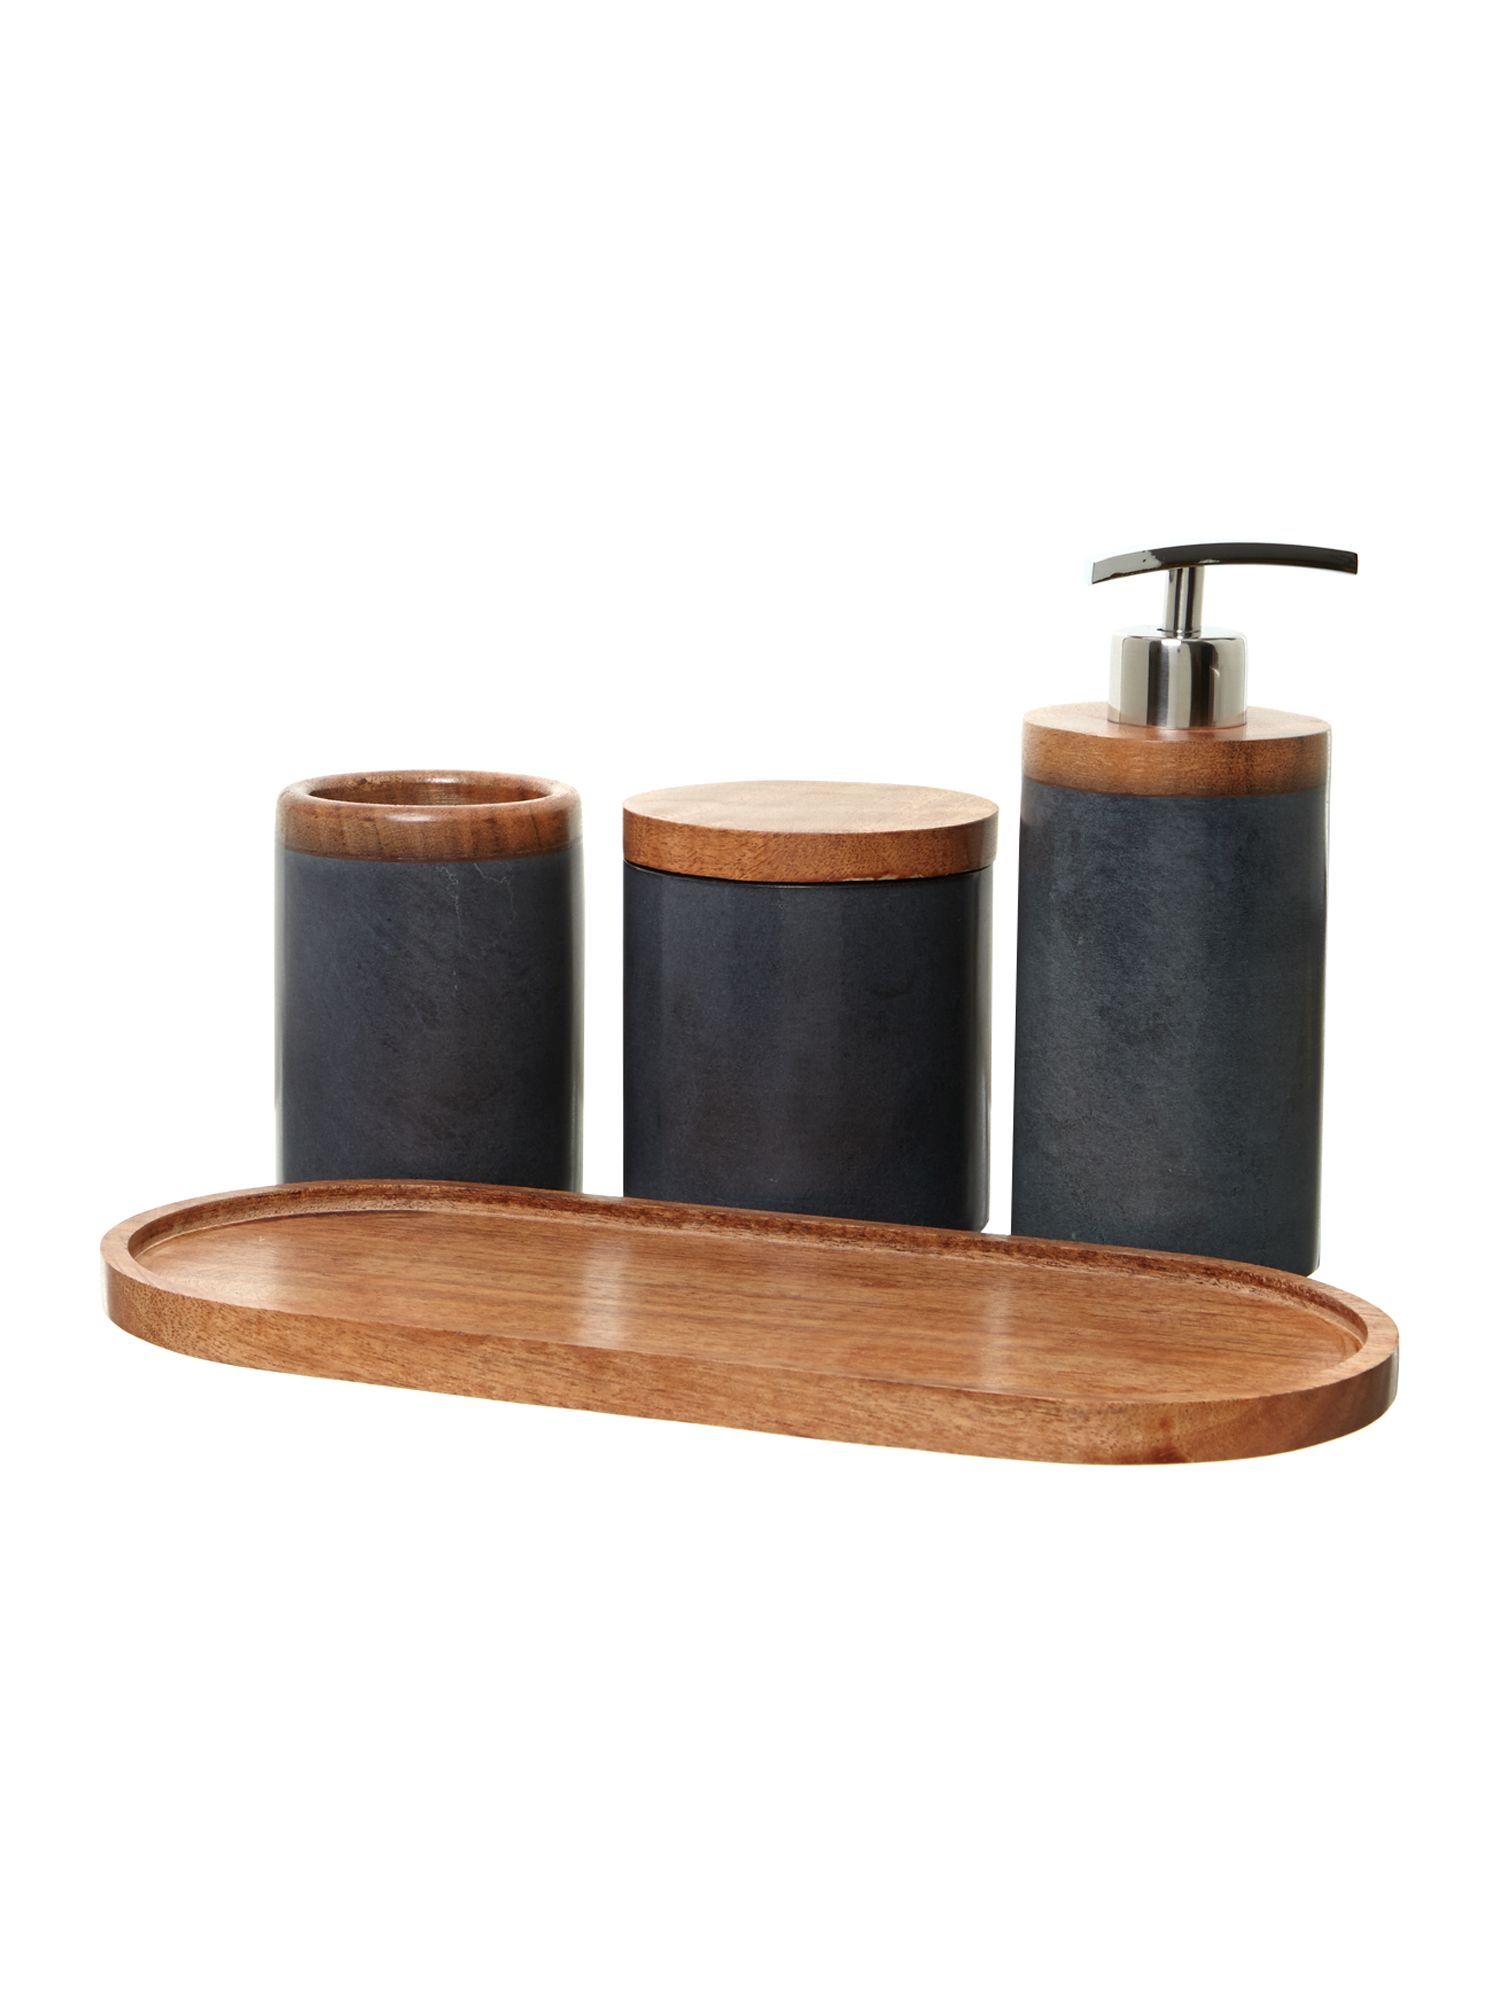 Soapstone and wood bathroom accessories